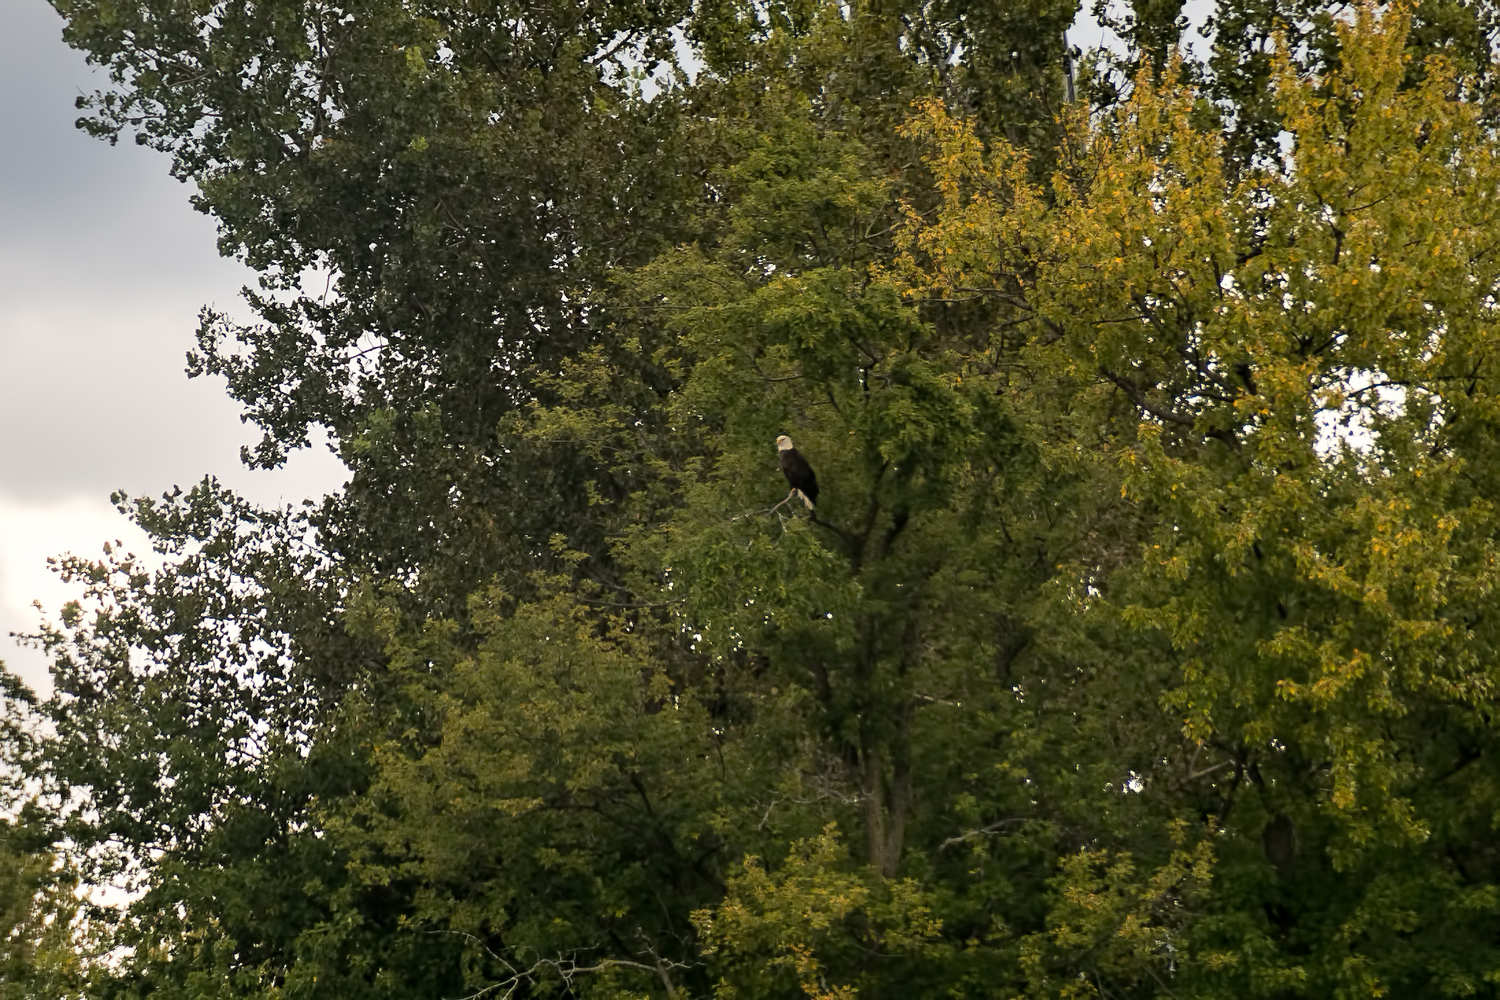 Shot of eagle across the river from Slippery's as we were eating lunch